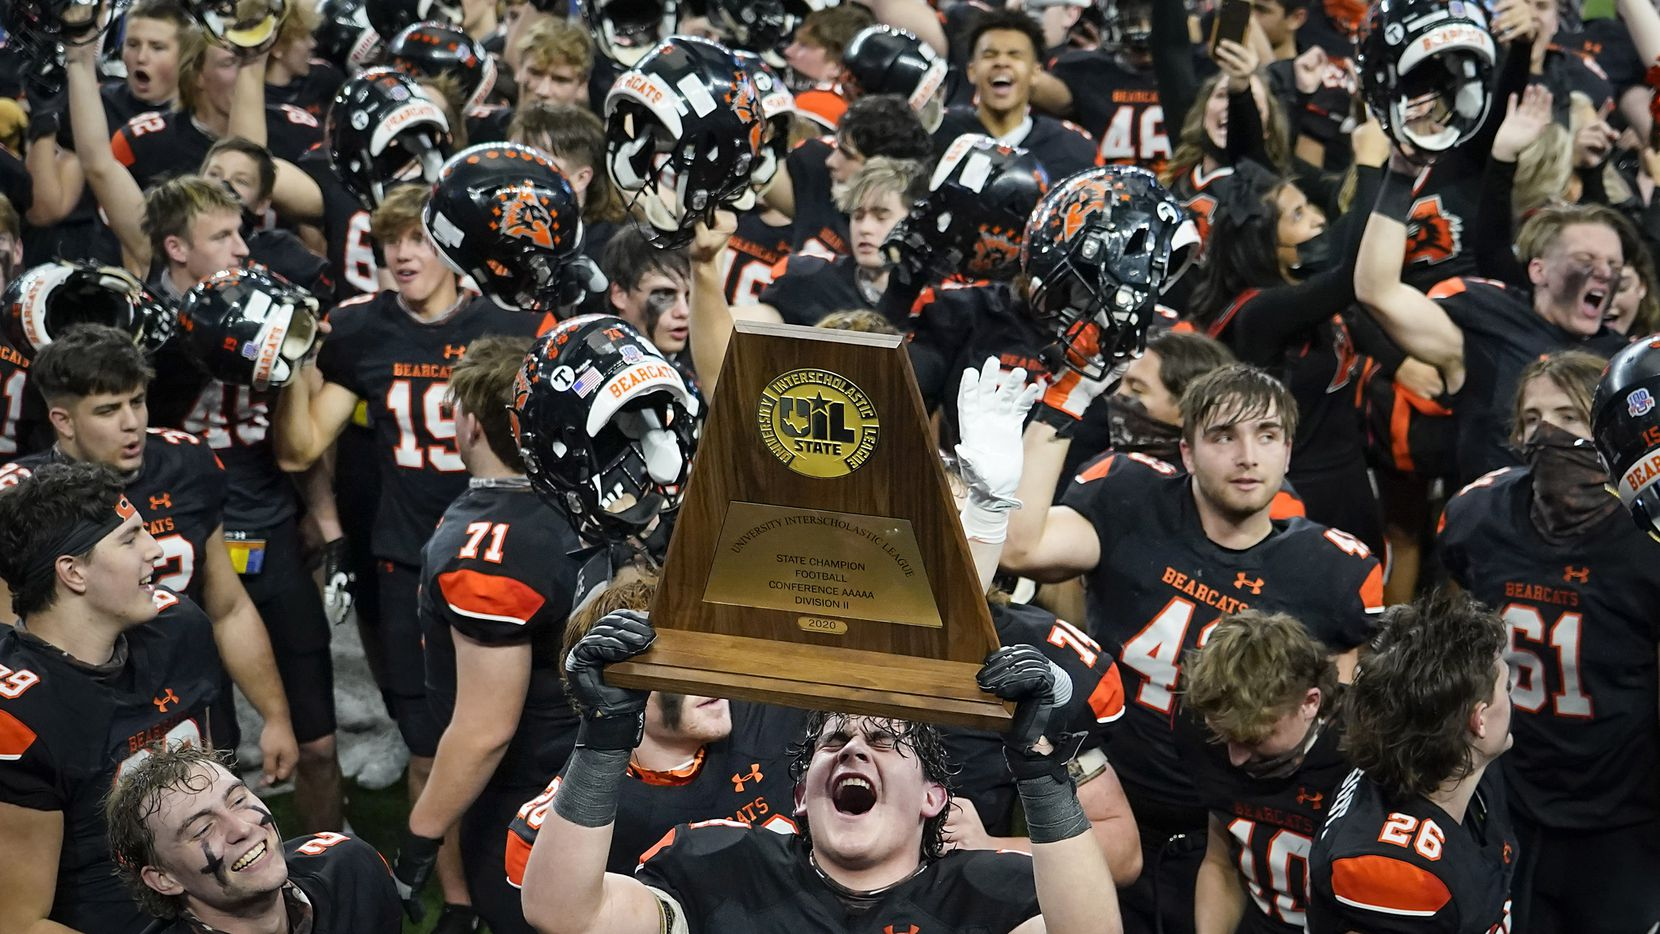 Aledo offensive lineman Rocco O'Keefe (54) hoists the championship trophy as the Bearcats  celebrate after a 56-21 victory over Crosby to win the Class 5A Division II state football championship game at AT&T Stadium on Friday, Jan. 15, 2021, in Arlington. The victory gave Aledo the 10th state championship in school history.